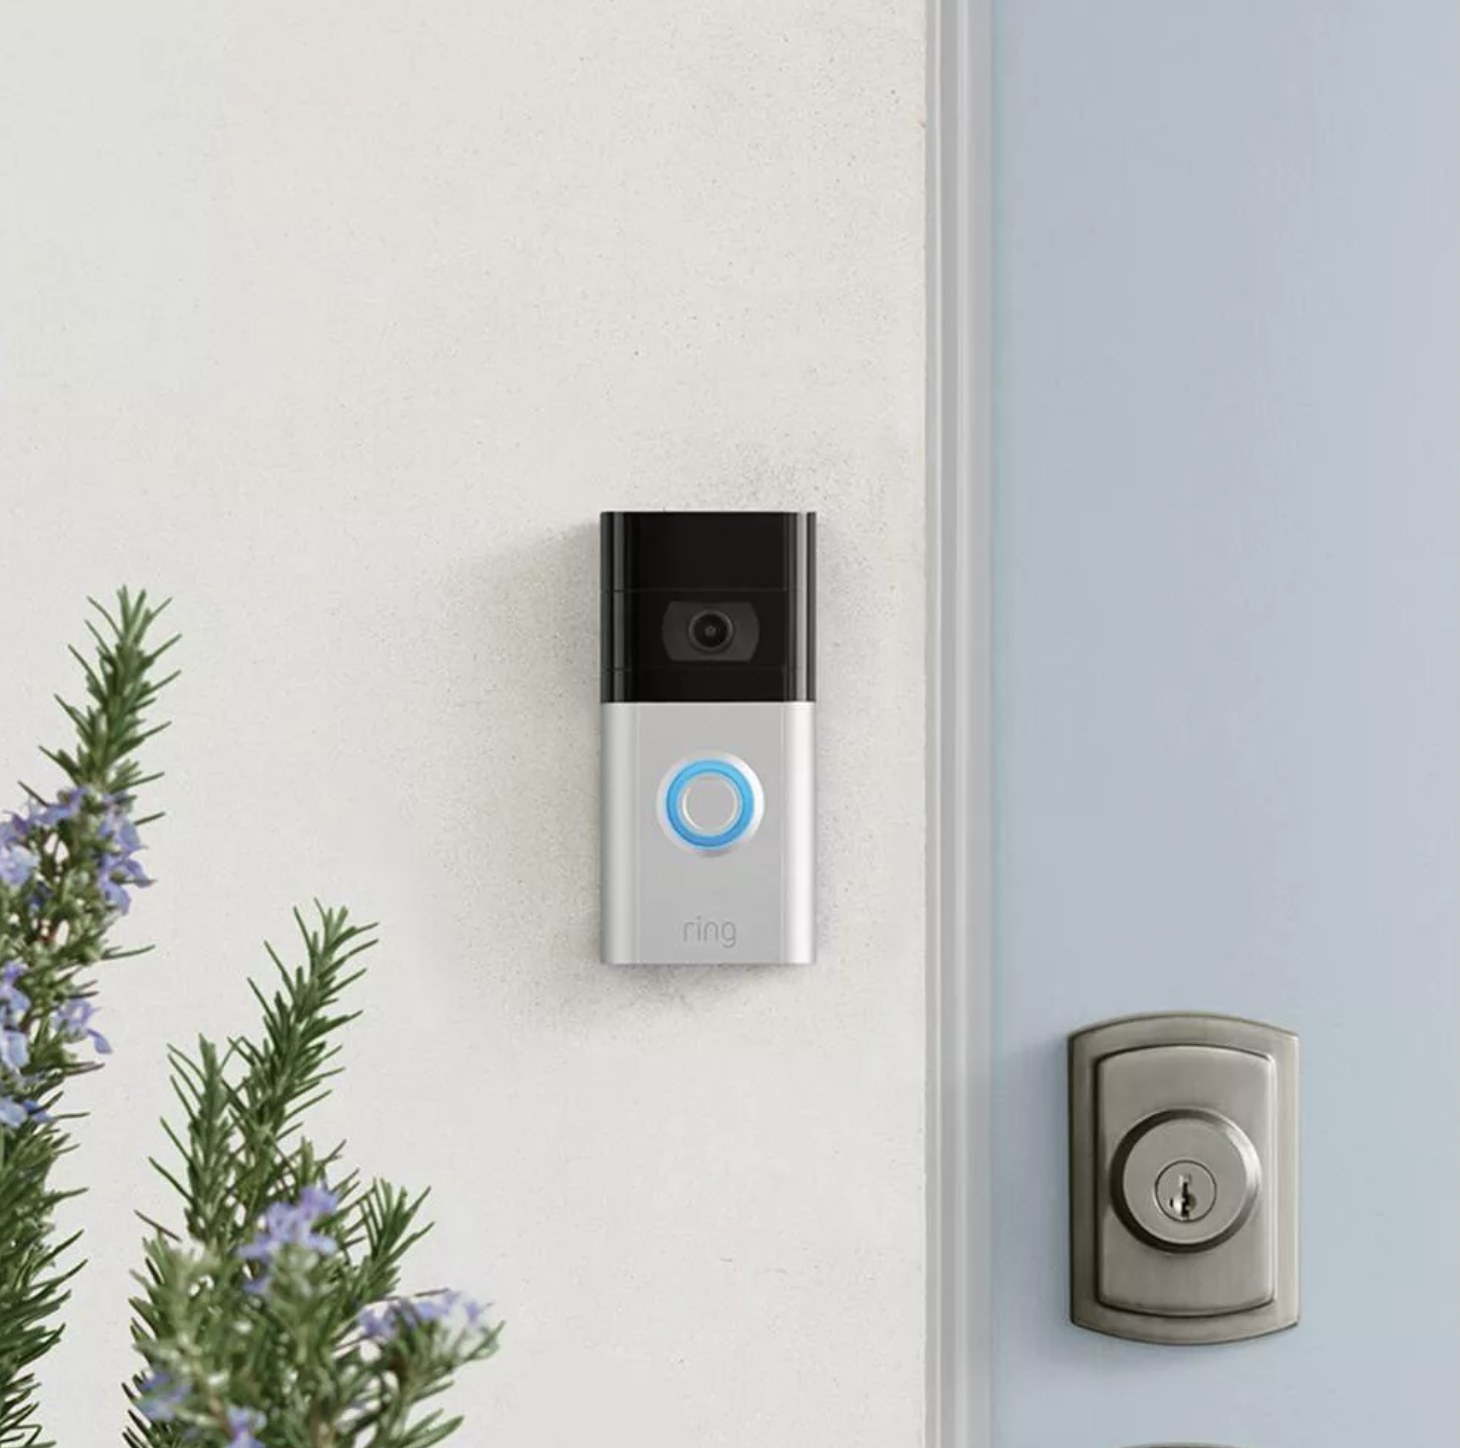 The ring video doorbell on a house